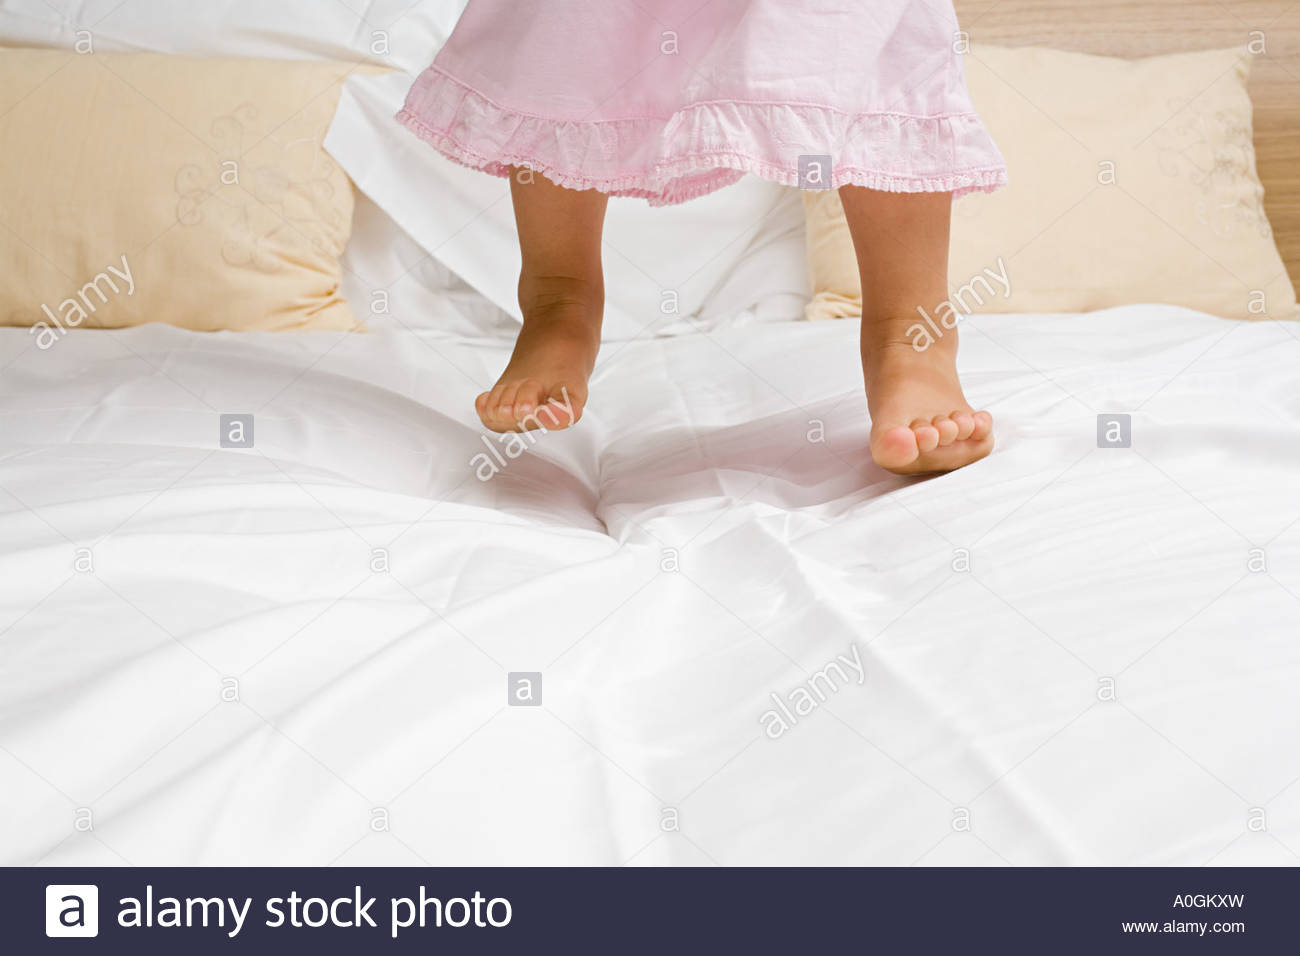 Girl jumping on a bed - Stock Image